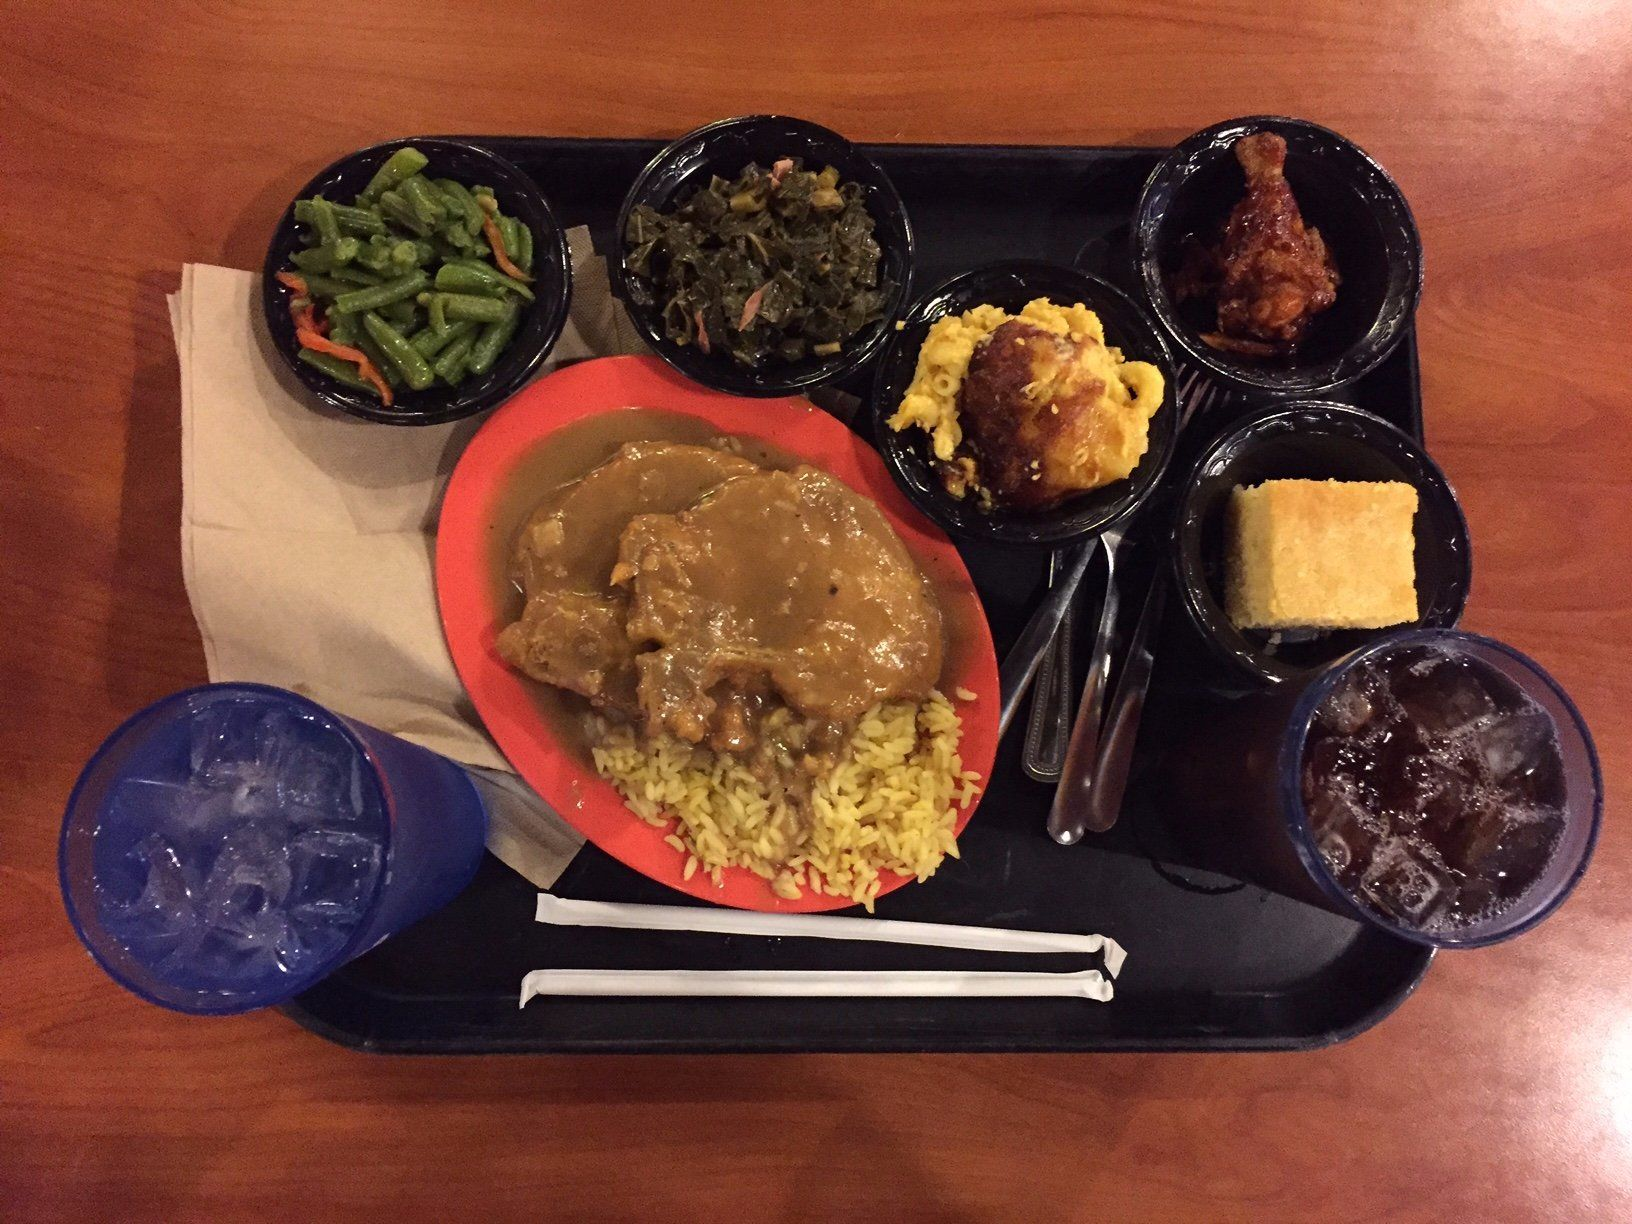 Potter S House Soul Food Bistro Southside Jacksonville See 184 Unbiased Reviews Of Rated 4 5 On